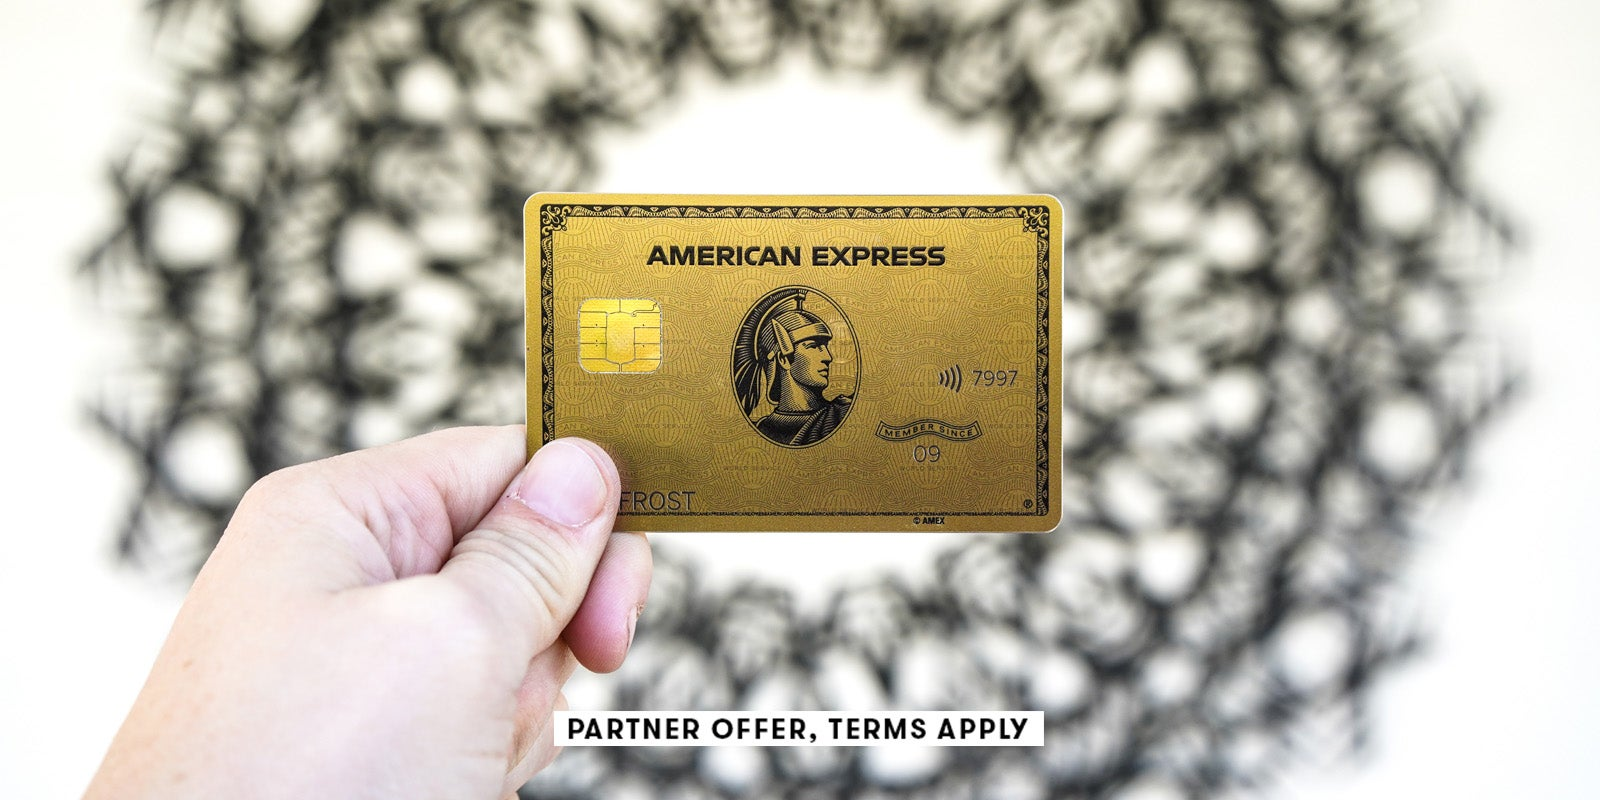 American Express Gold credit card review - The Points Guy